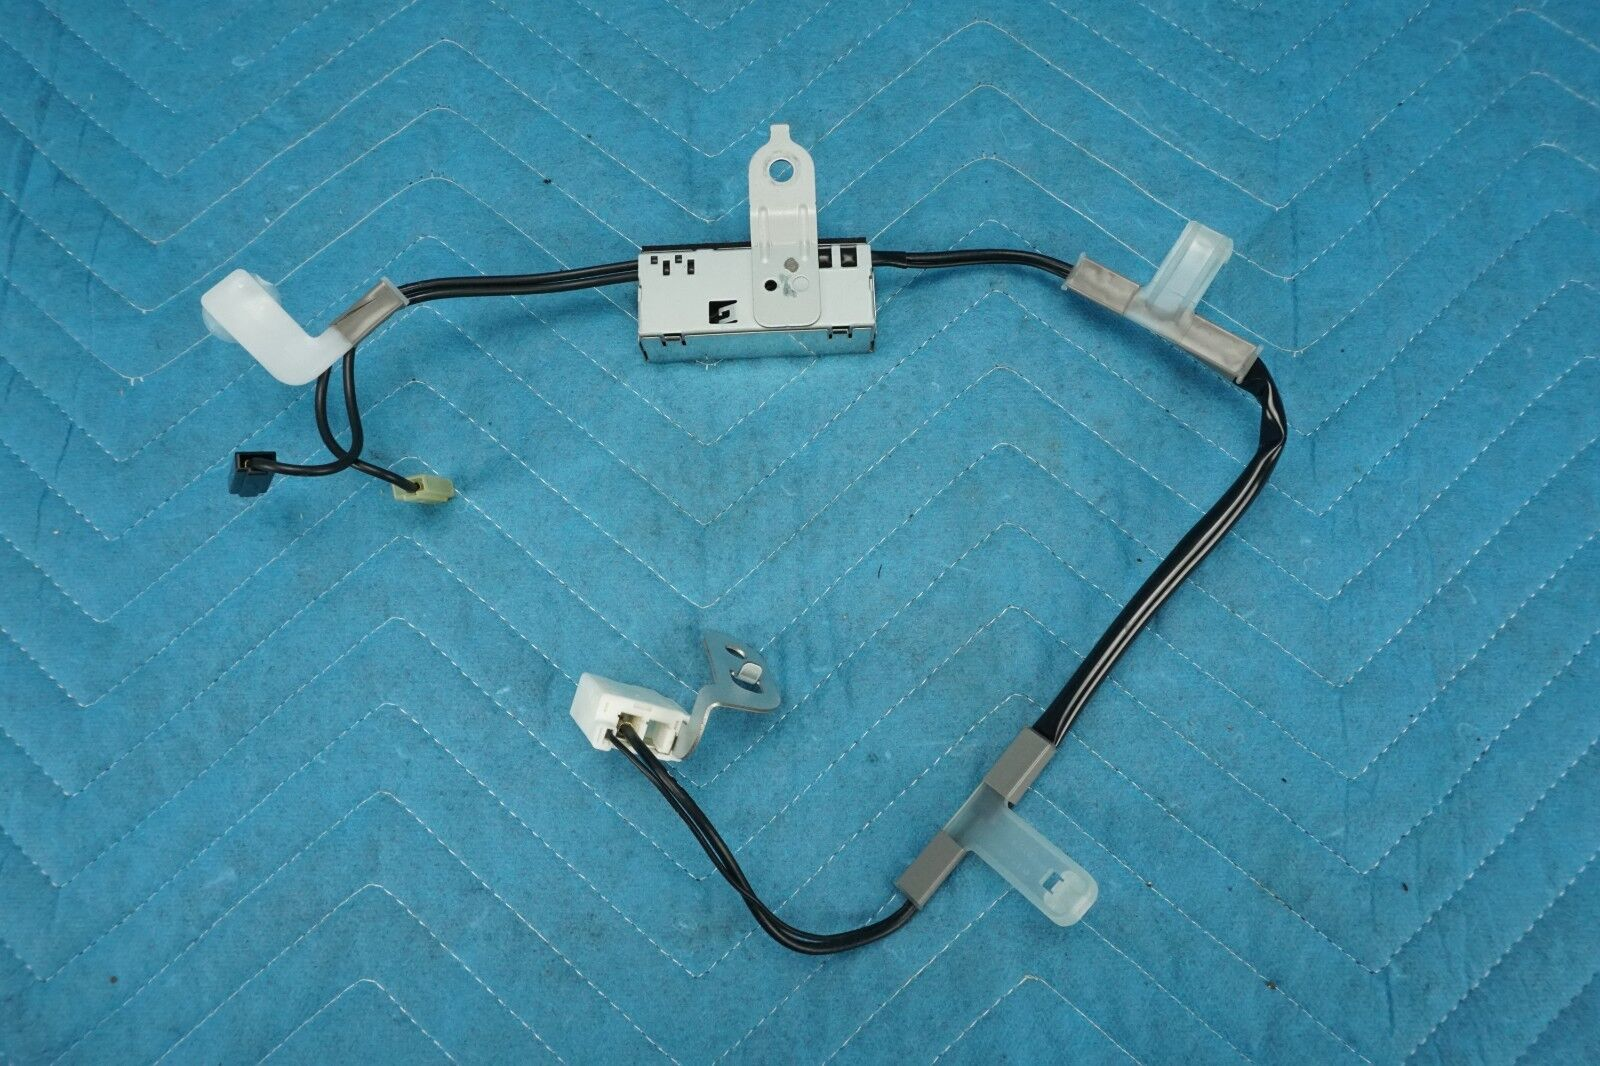 Used Toyota Highlander Antennas For Sale 02 Stereo Wiring 2002 2007 Amplifier Antenna Lh Driver Side 86300 48110 Oem